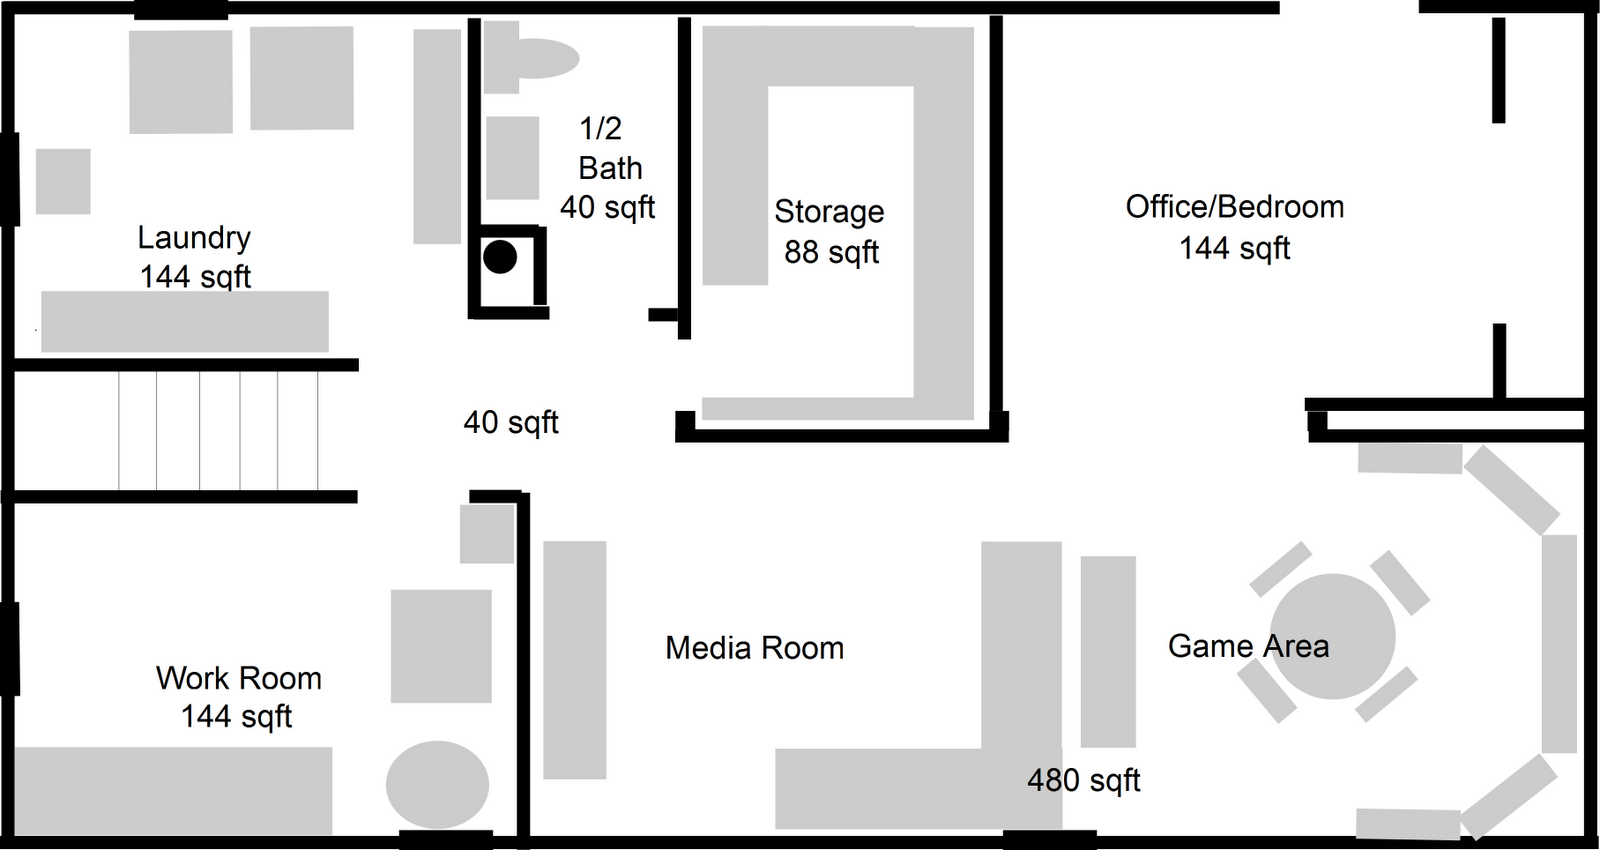 Basement floorplan ideas images frompo 1 for Basement planner online